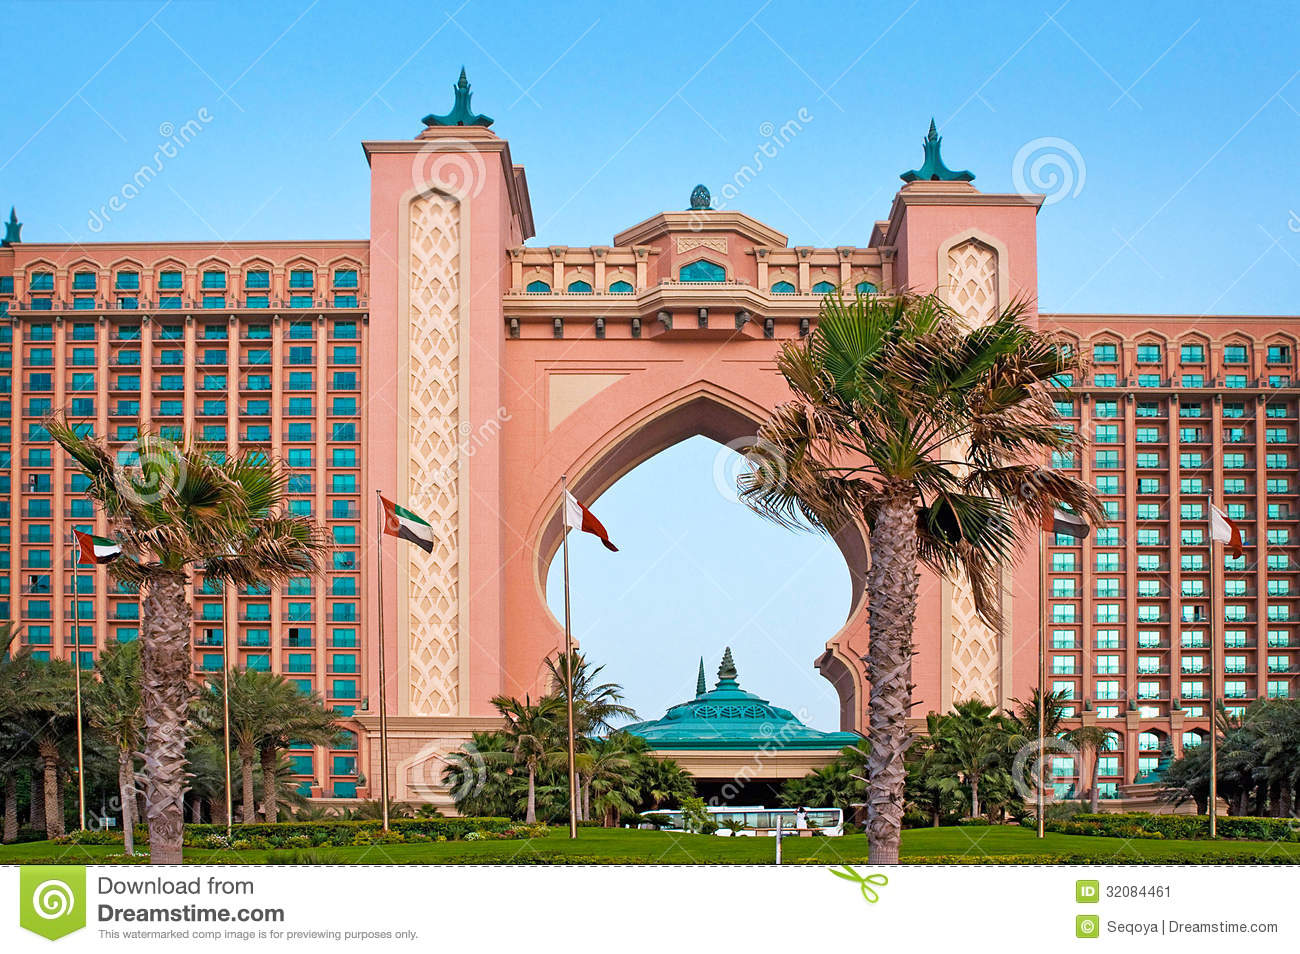 The famous atlantis hotel on the palm island on june 3 for The famous hotel in dubai